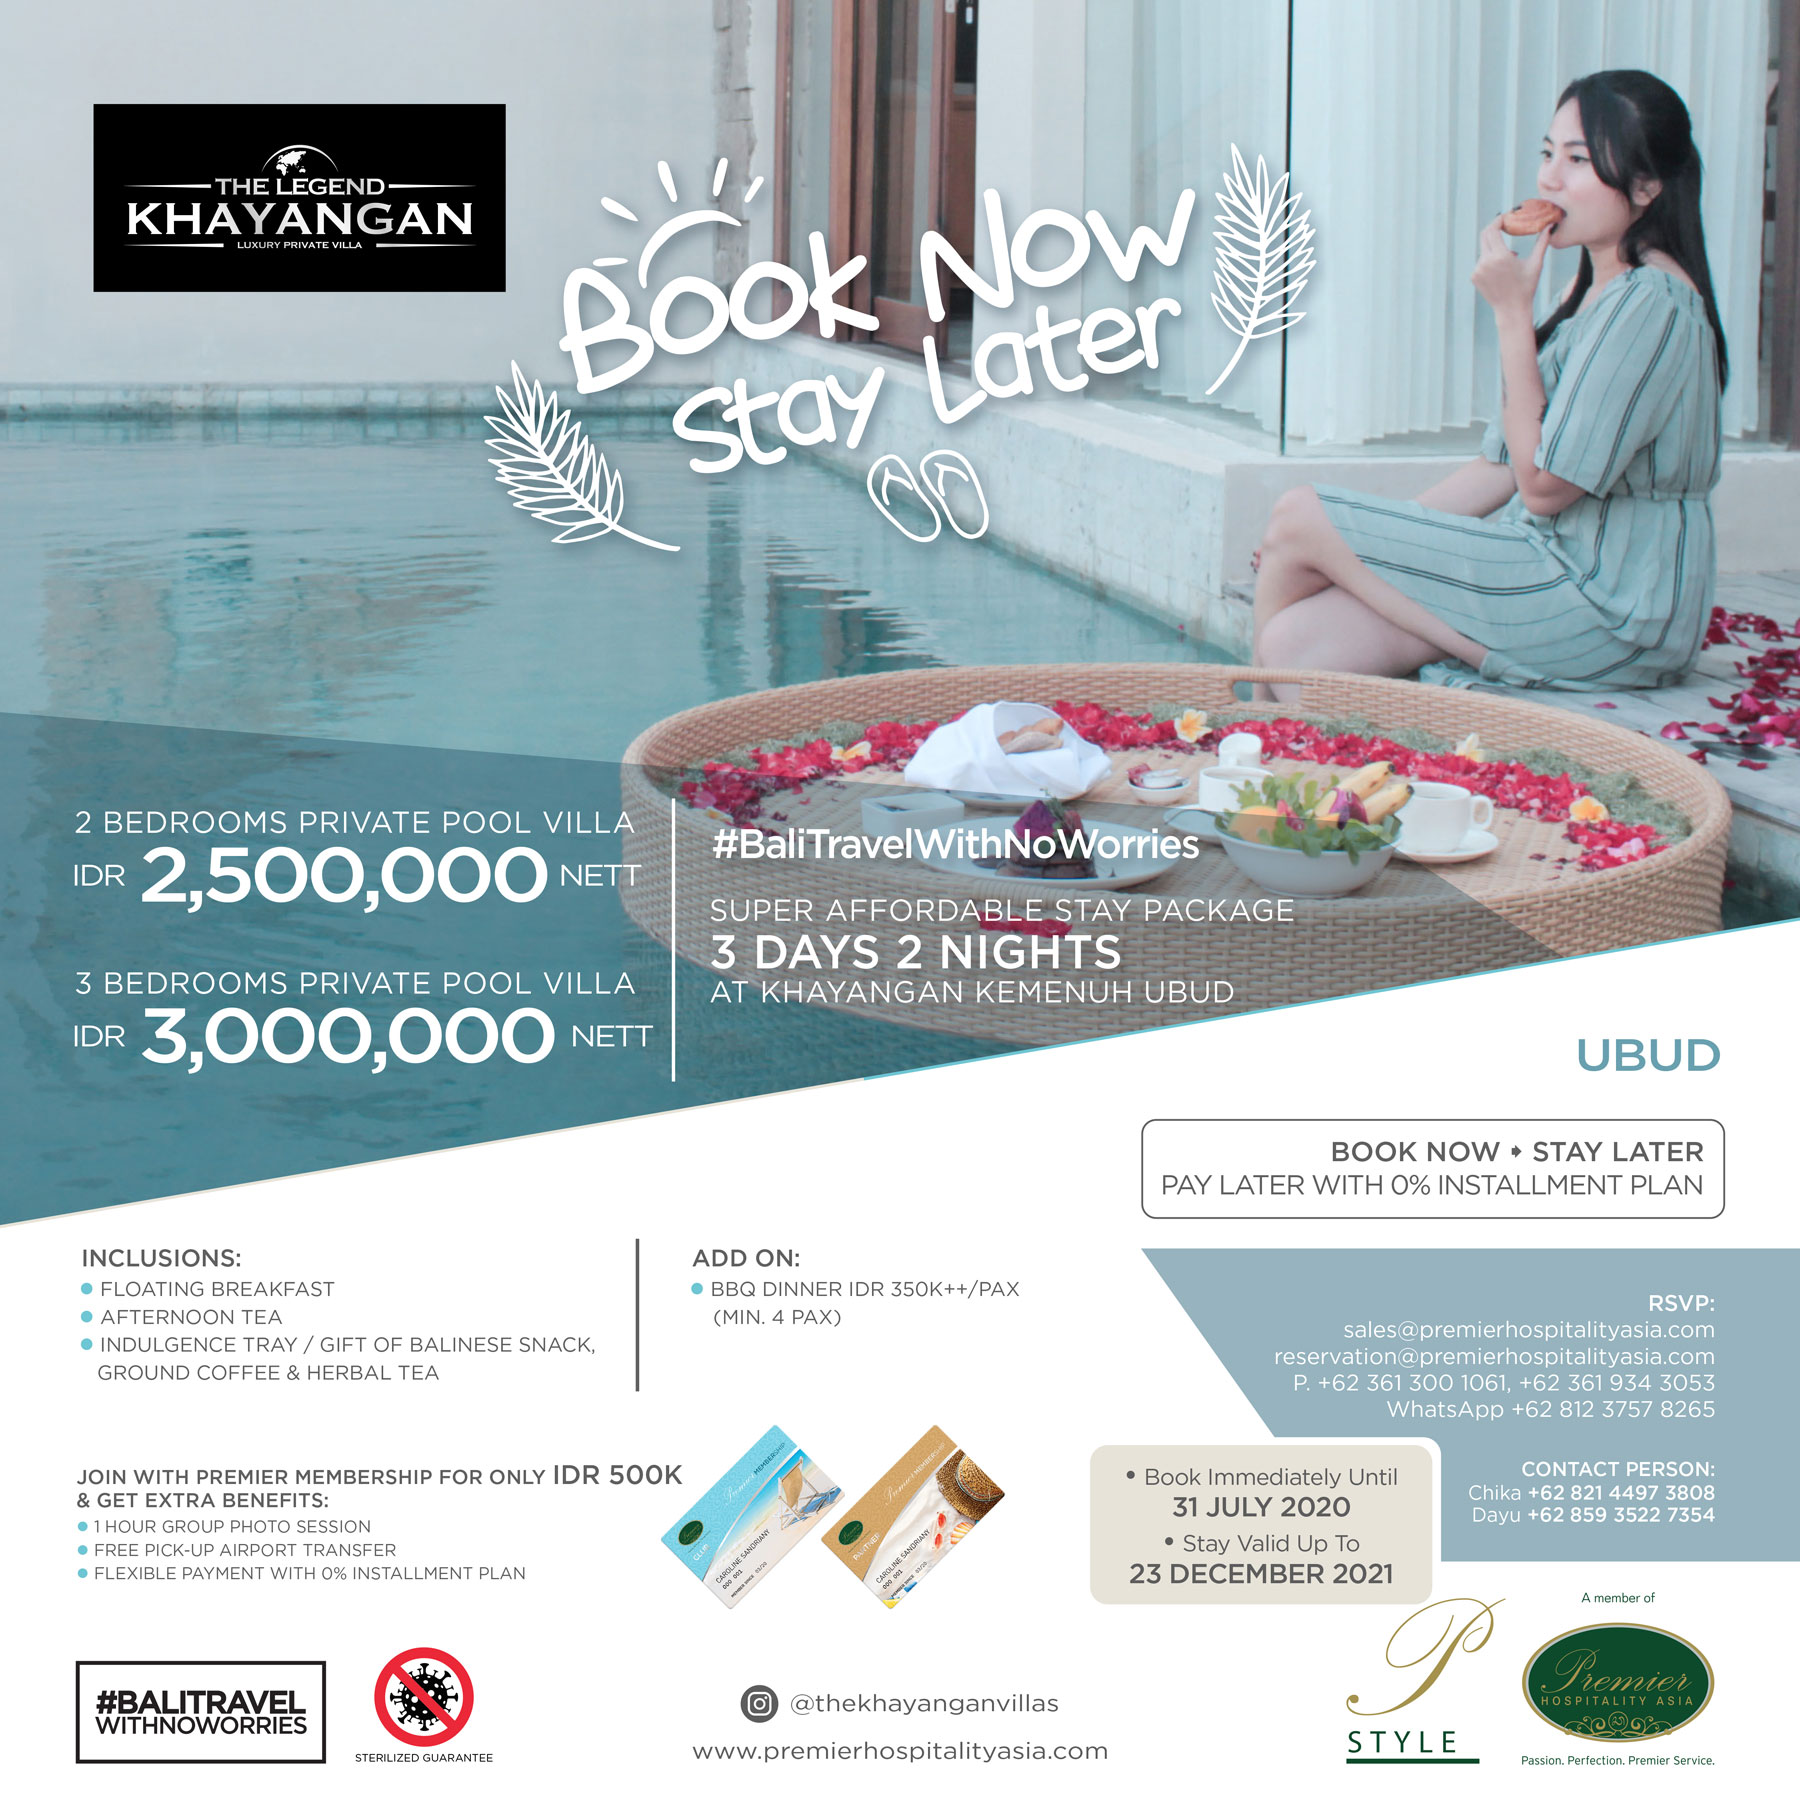 khayangan-kemenuh-villas-ubud-book-now-stay-later-promo-bali-villa-by-premier-hospitality-asia